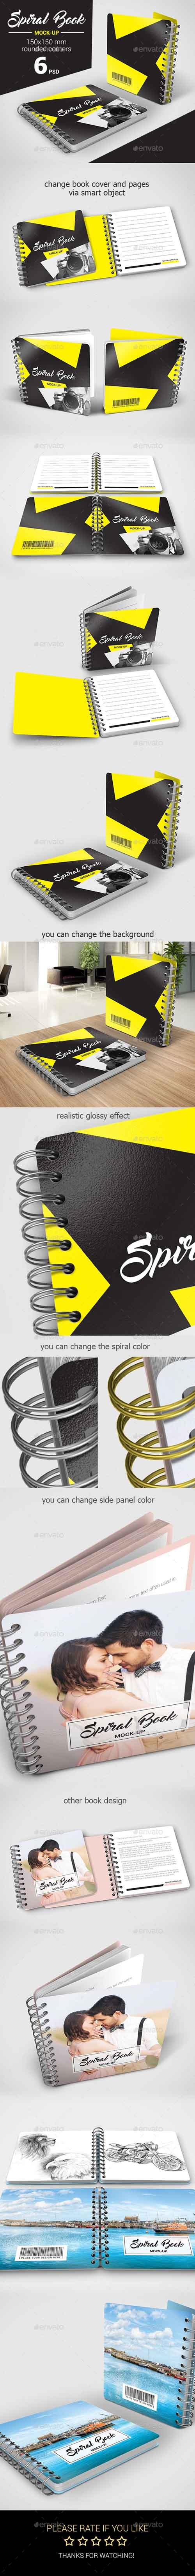 Spiral Book Mock-Up 16955801